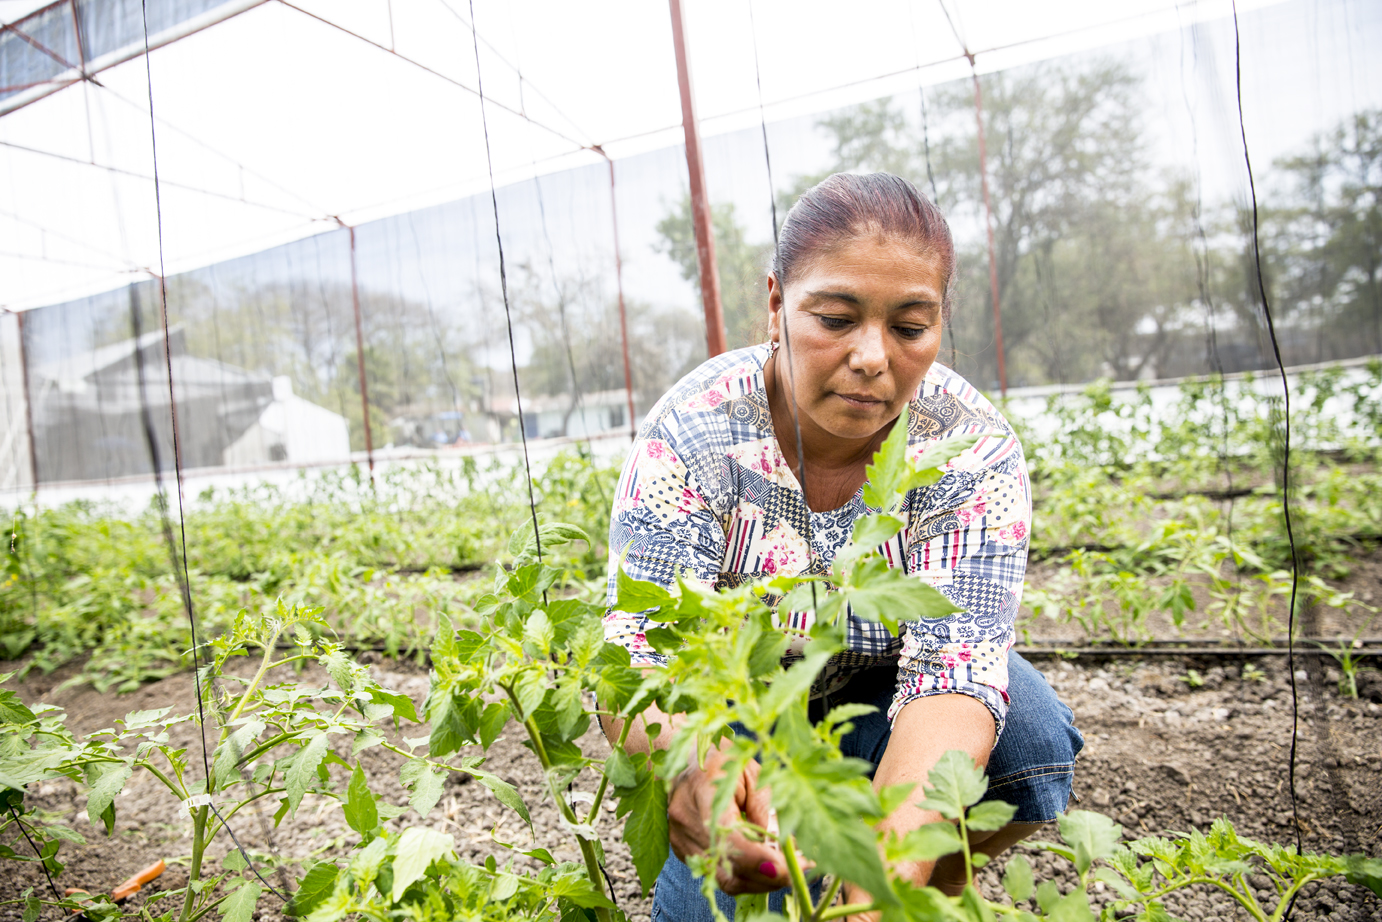 Emma Maria Guadarrama, a client of CrediConfia, can invest in farming methods that extend past the traditional harvest season.